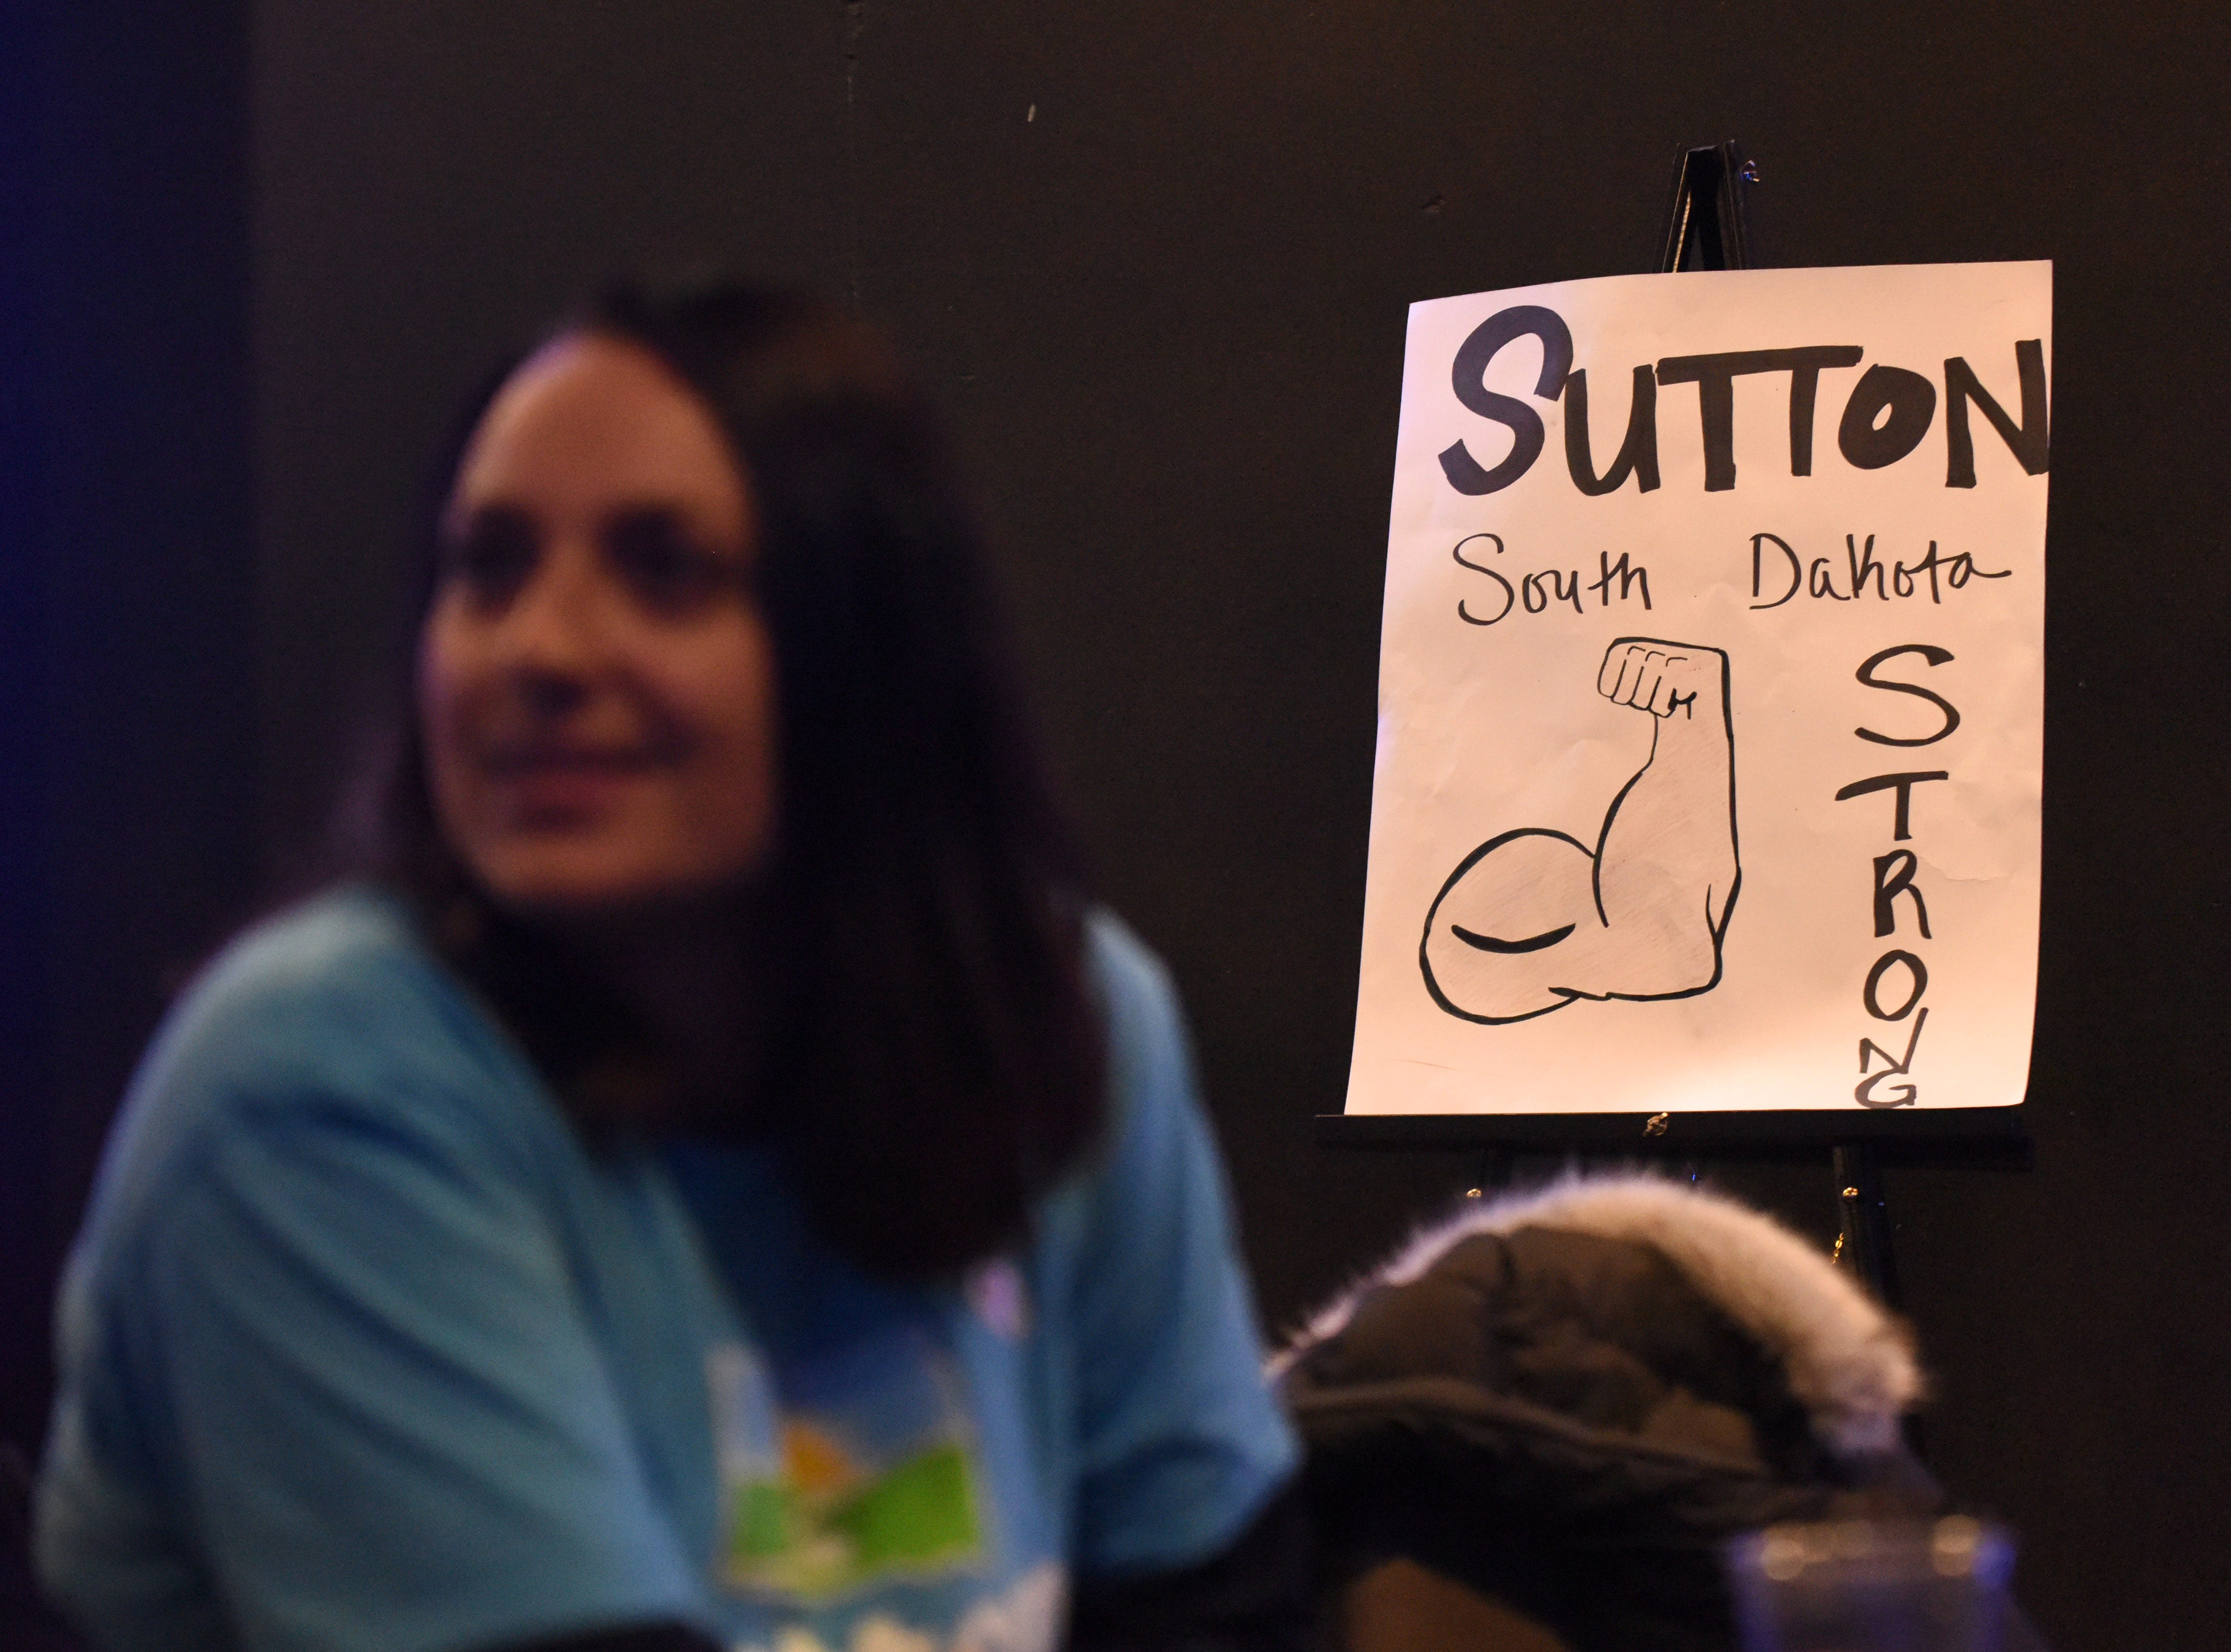 Billie Sutton sign shown at the Democratic night party, Tuesday, Nov. 6, 2018 at The District in Sioux Falls, S.D.